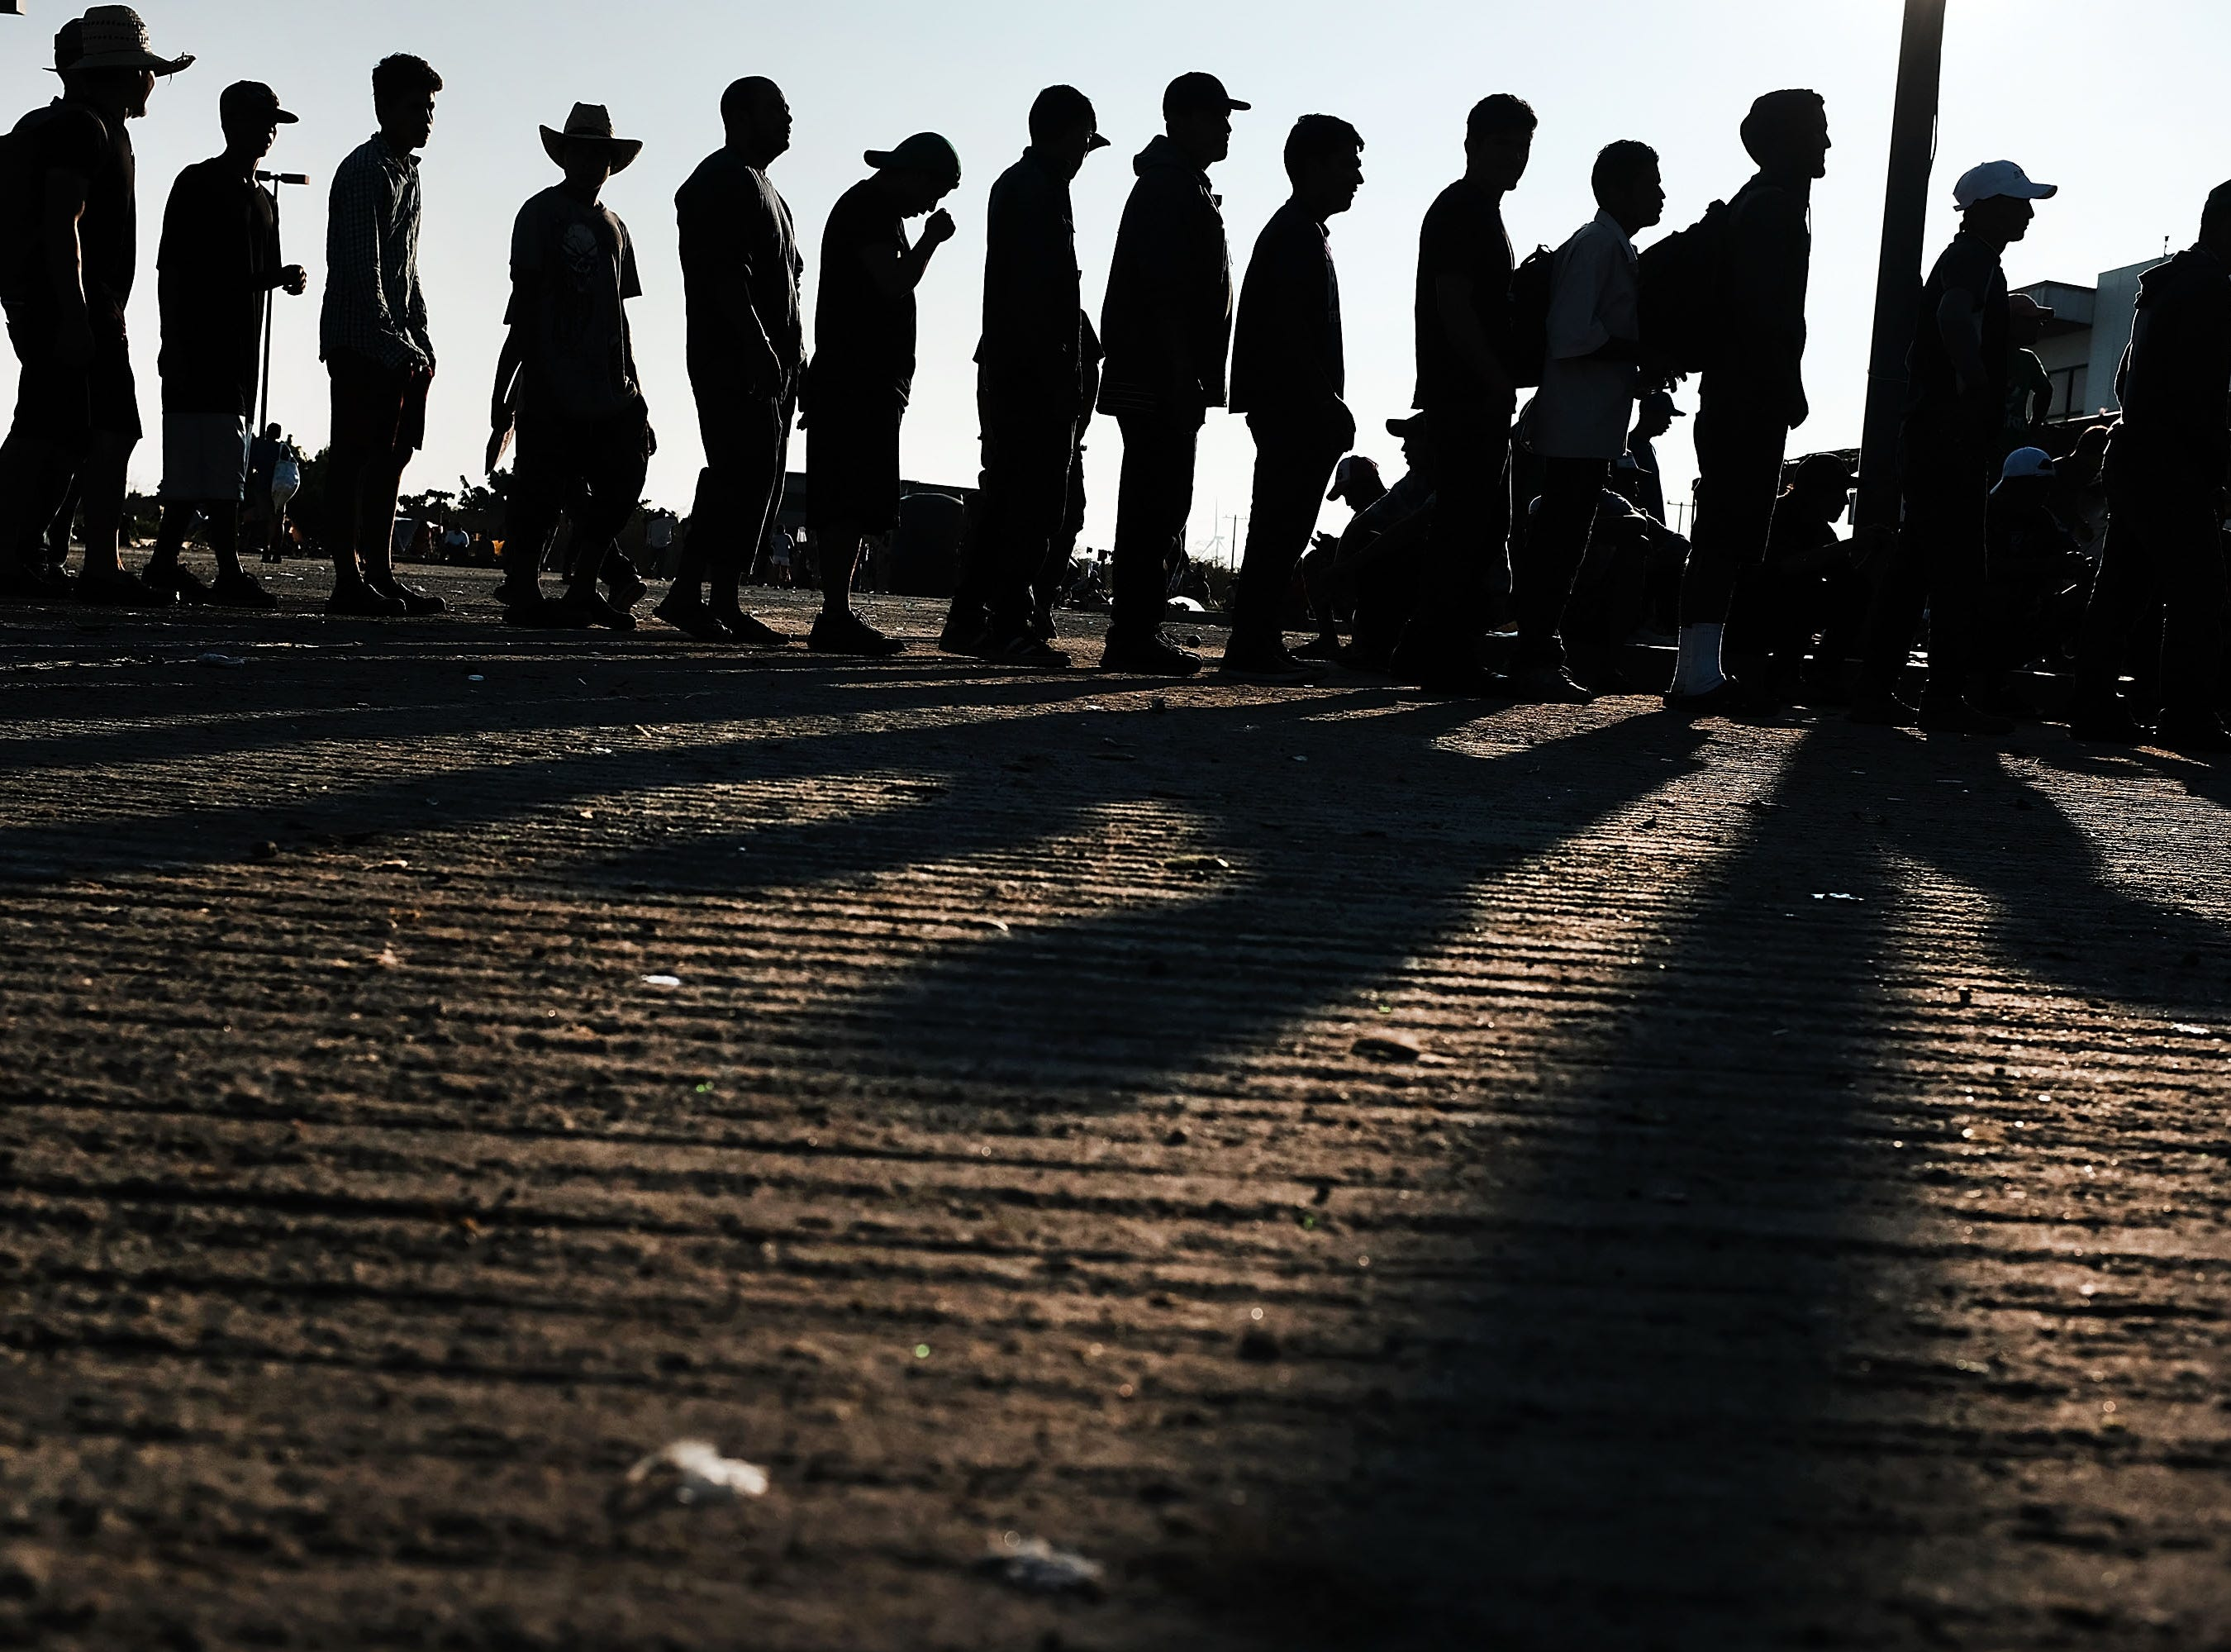 Members of the Central American caravan line up at dawn for food in a camp on Oct. 31, 2018 in Juchitan de Zaragoza, Mexico. The group of migrants, many of them fleeing violence in their home countries, took a rest day on Wednesday and plan to resume their march towards the United States border on Thursday. As fatigue from the heat, distance and poor sanitary conditions has set in, the numbers of people participating in the march has slowly dwindled, but a significant group are still determined to get to the United Sates. It has been widely reported that the Pentagon will deploy 5,200 active-duty troops to the U.S.-Mexico border in an effort to prevent members of the migrant caravan from illegally entering the country.